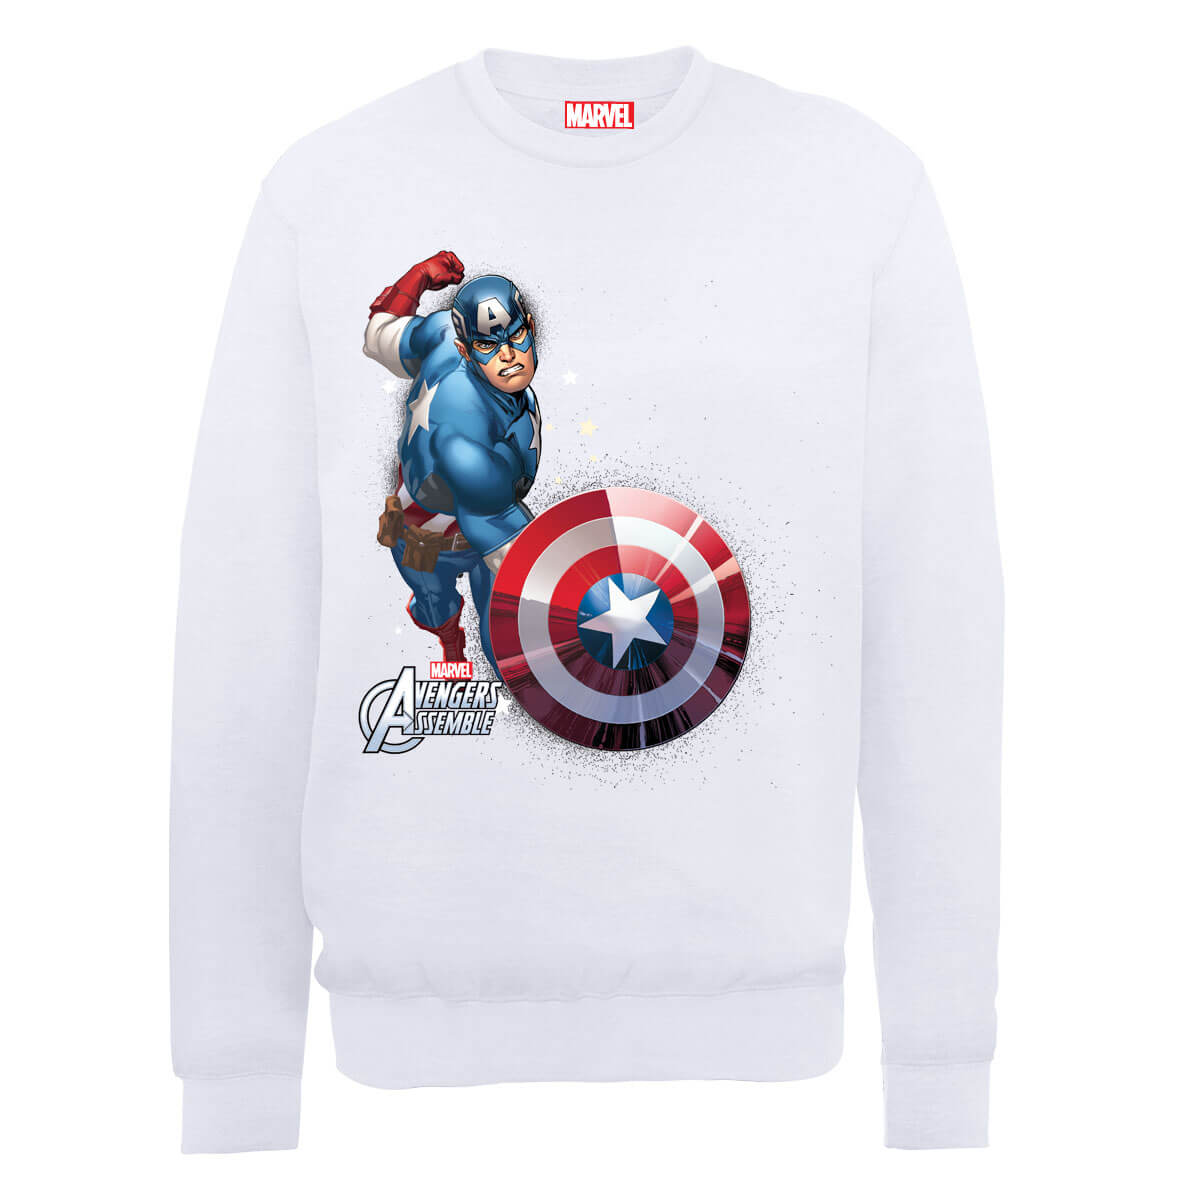 Marvel Avengers Assemble Captain America Comic Burst Sweatshirt - White